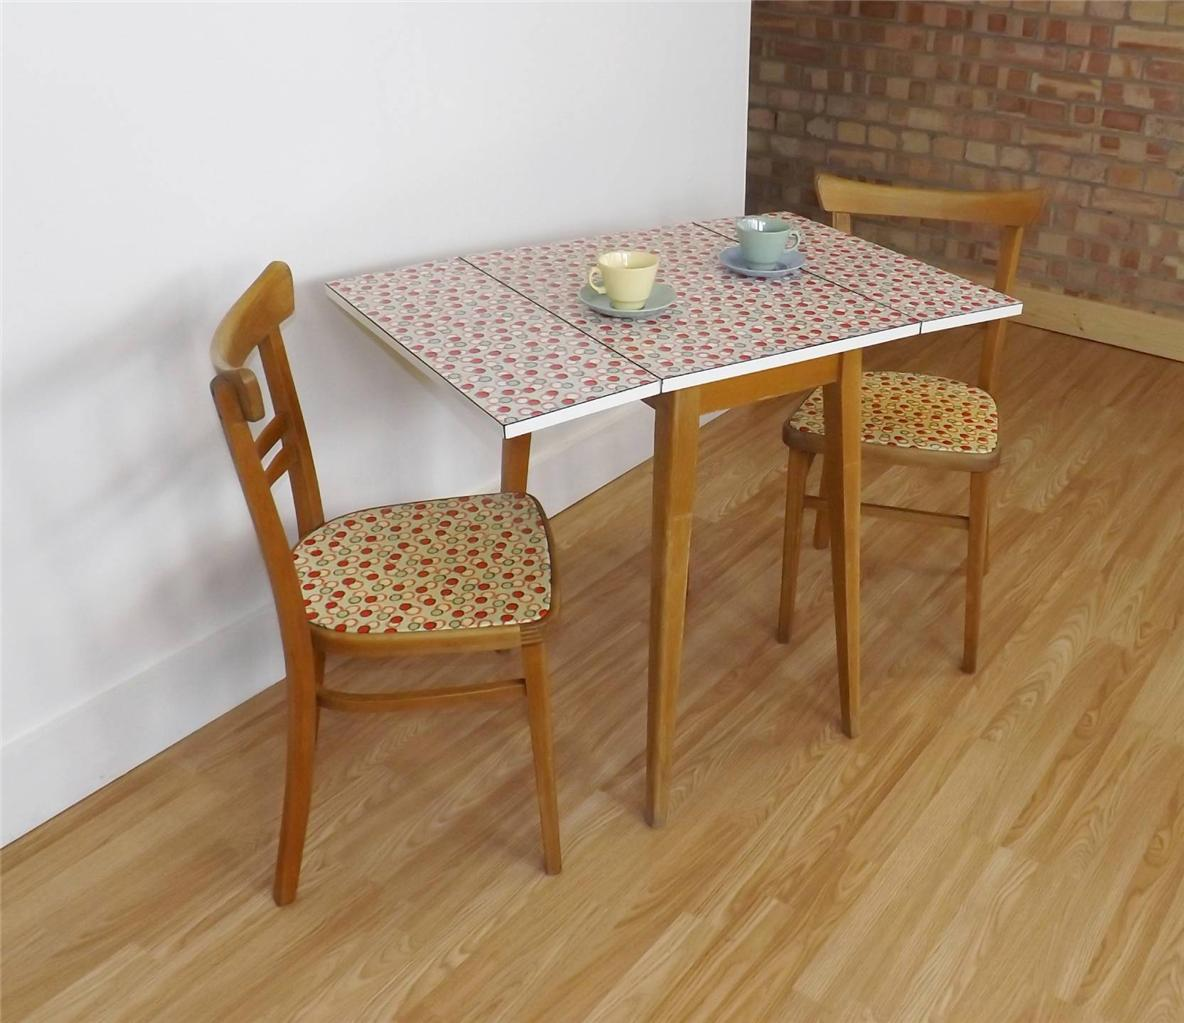 1950 039 s formica kitchen table and matching chairs retro atomic mid